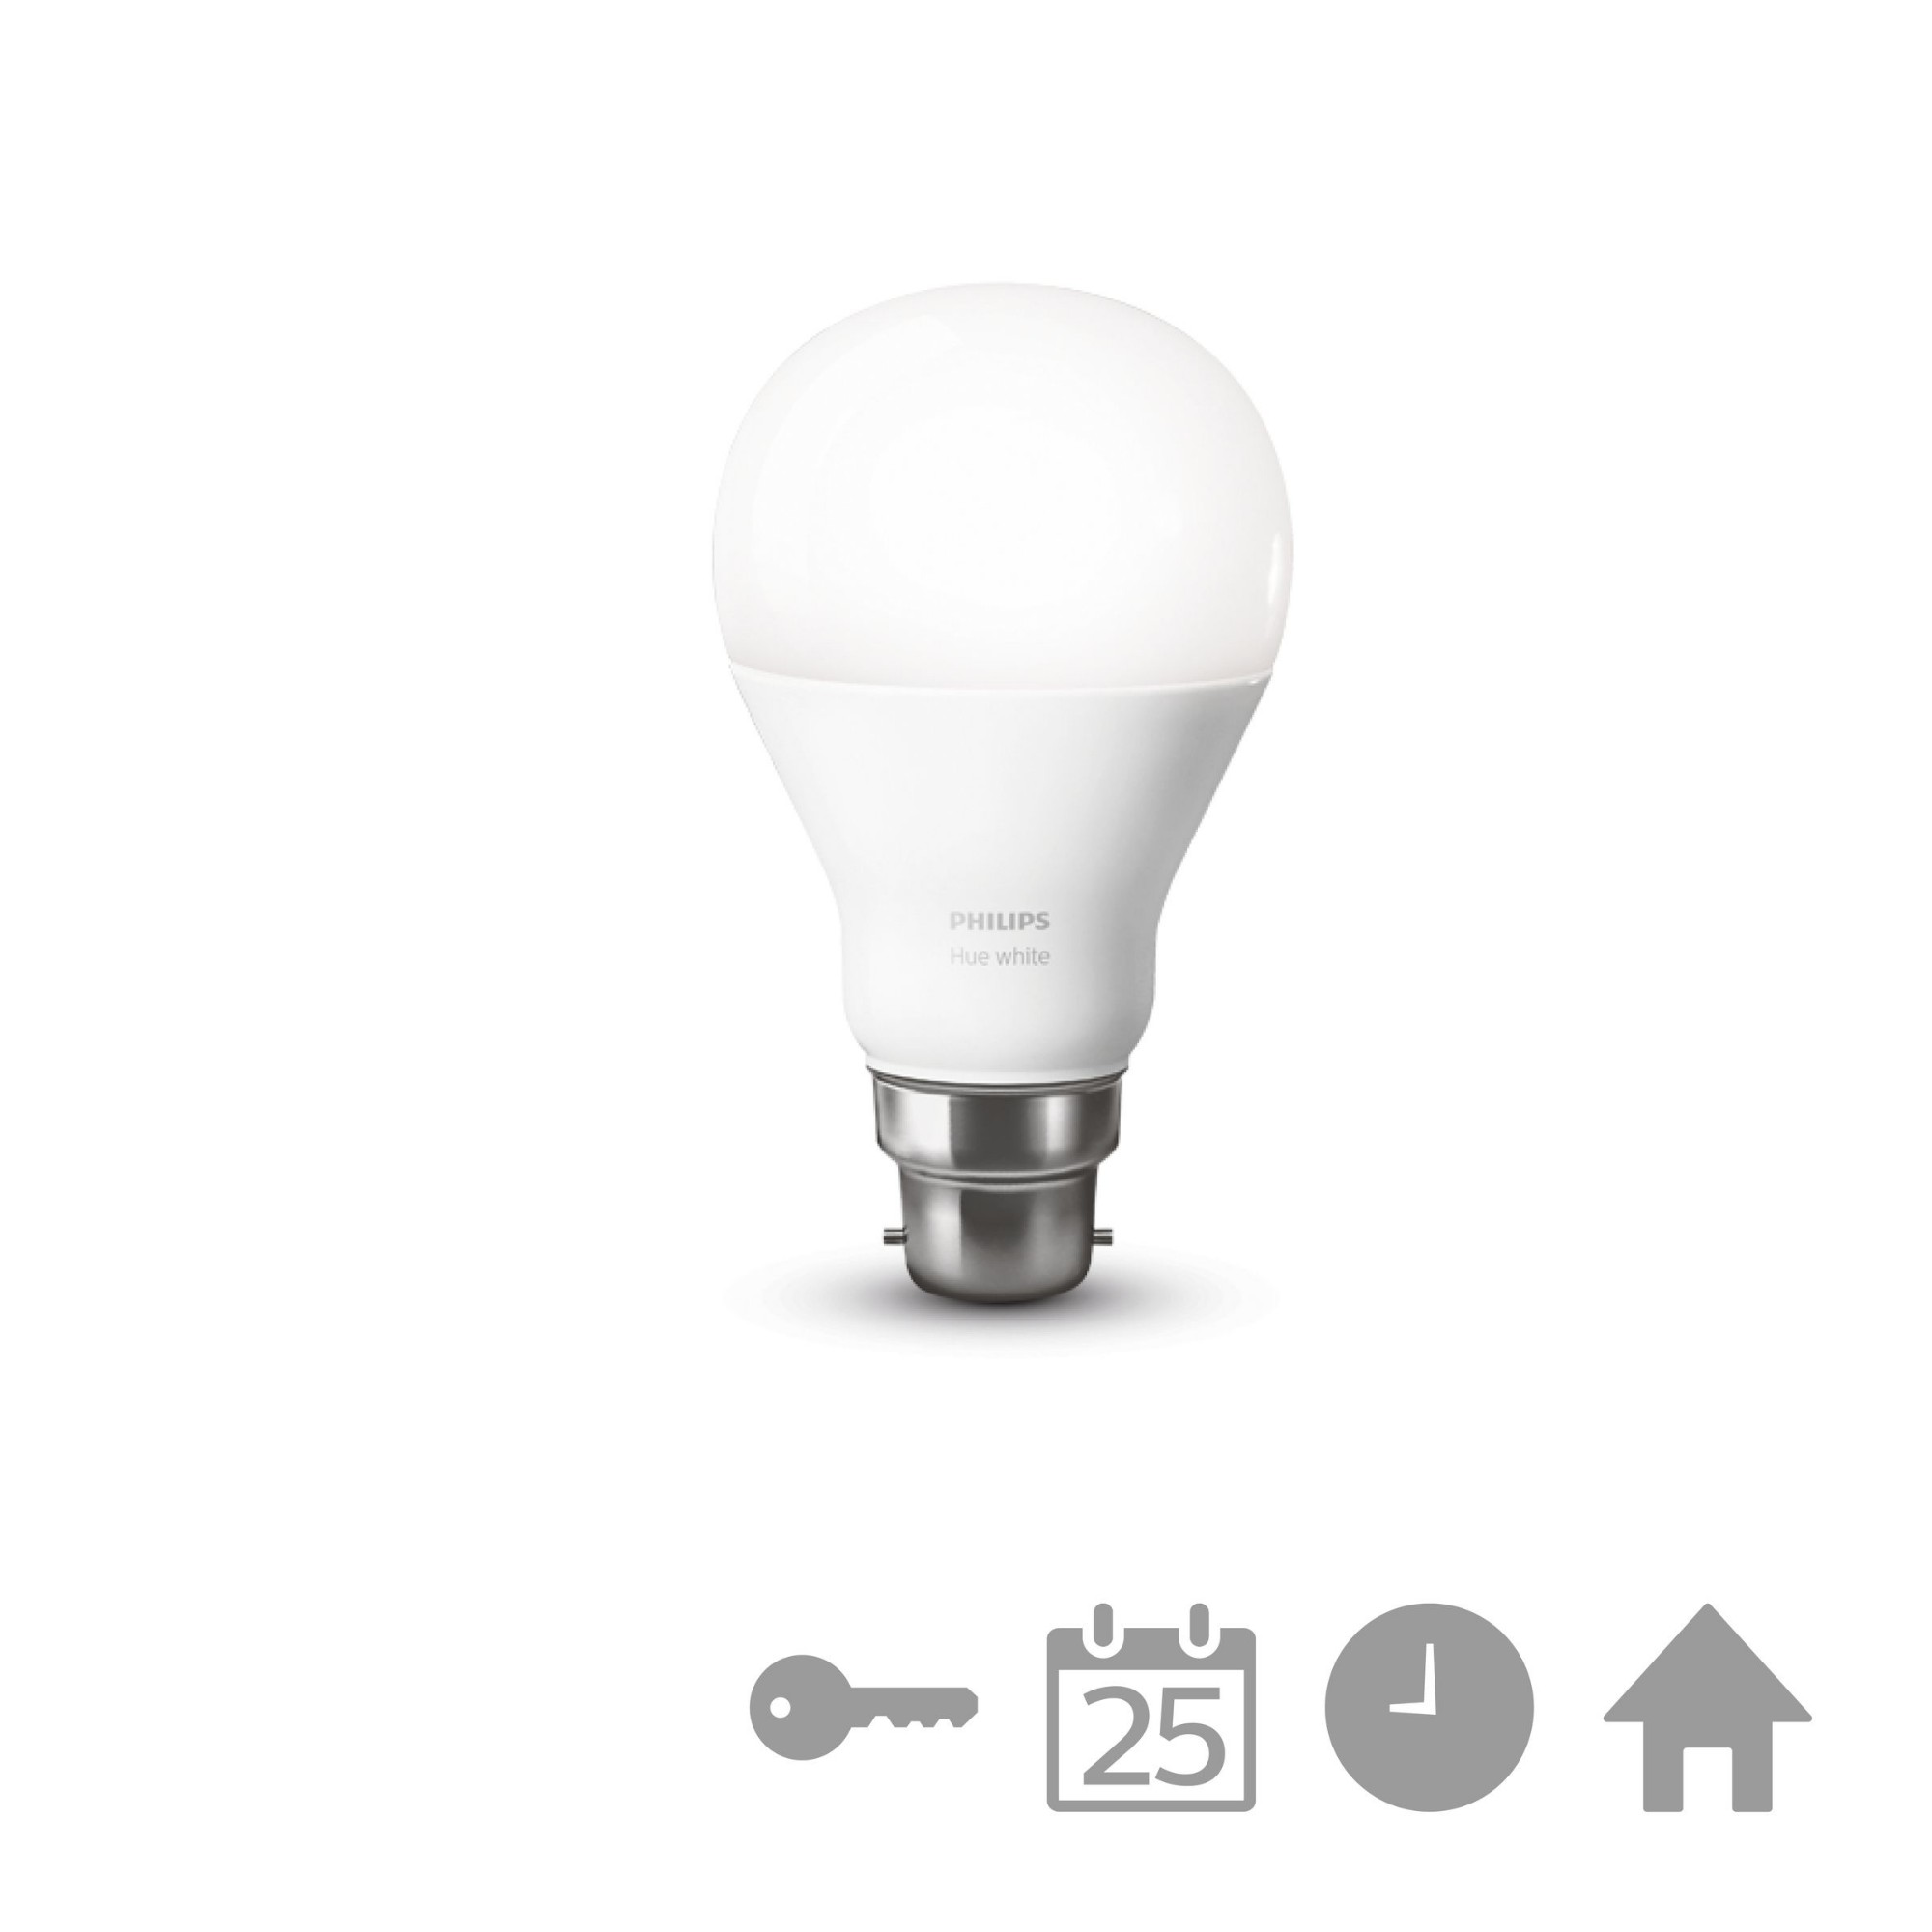 Philips Hue White 929001137101